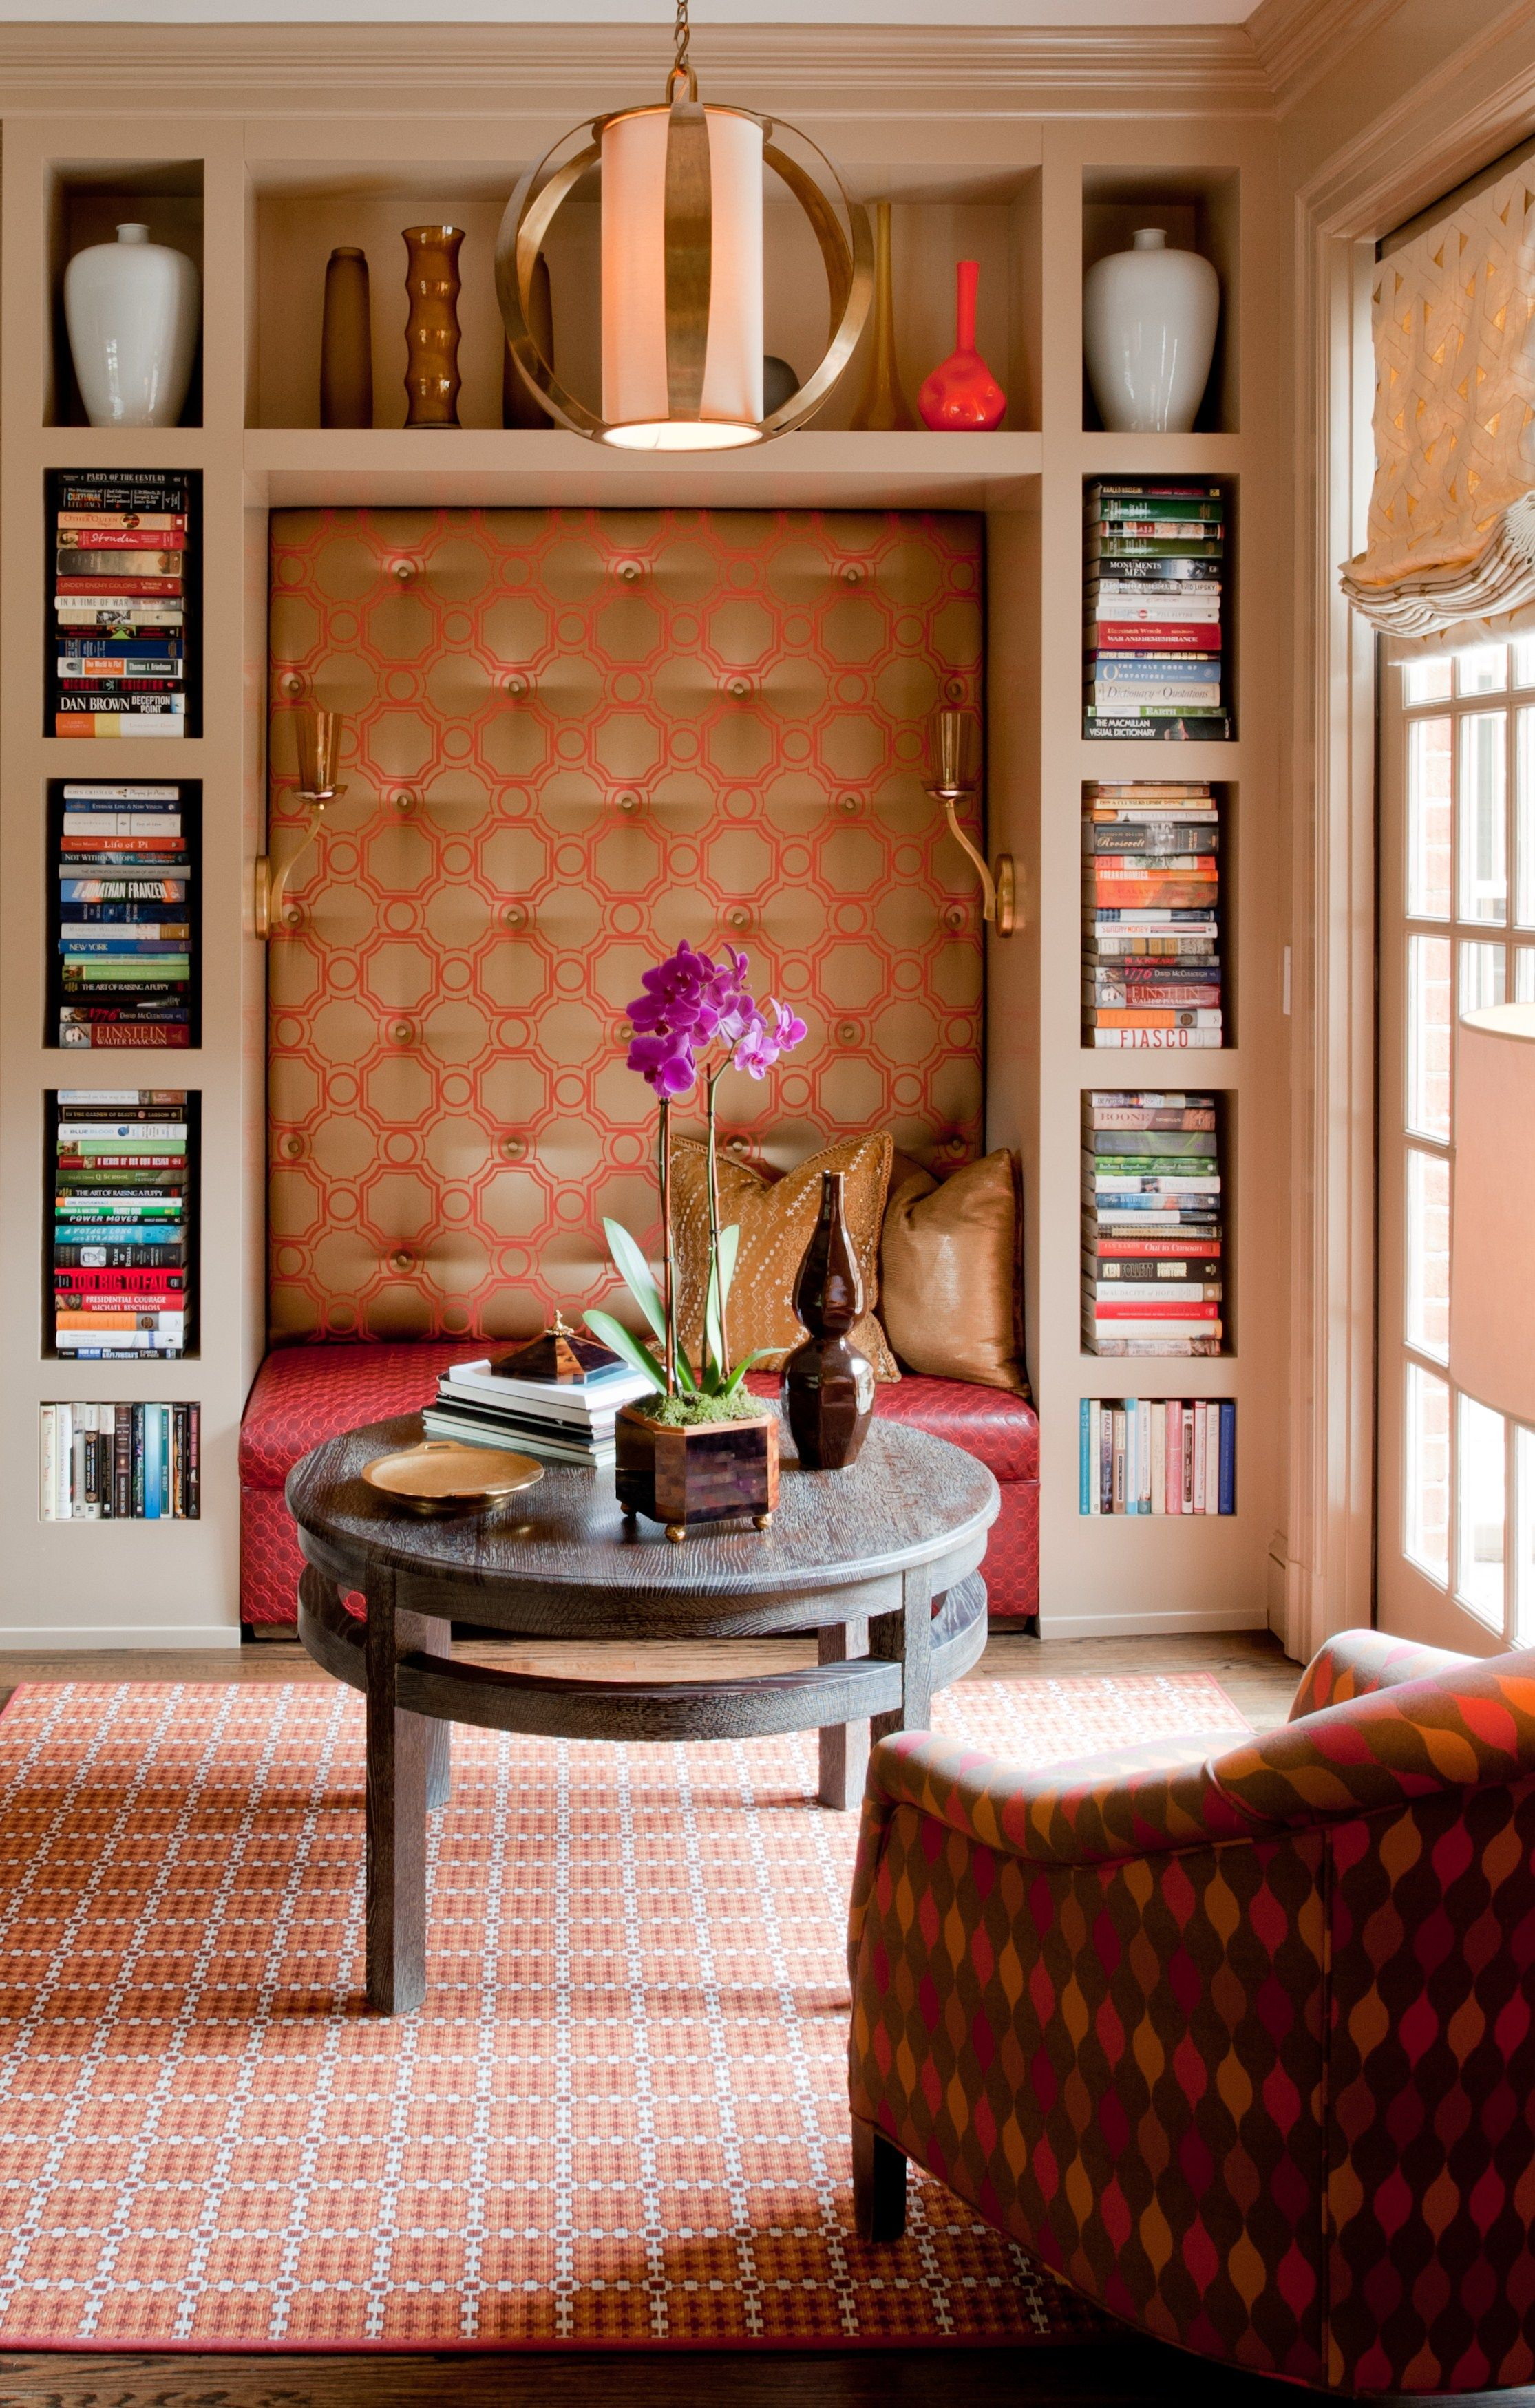 NIx the tacky colors. Like the concept of a reading nook in the bella sirena. Weathered wood backsplash. White cabinets. Grayish navy bench. Deeper with shelves. Overhead chandelier